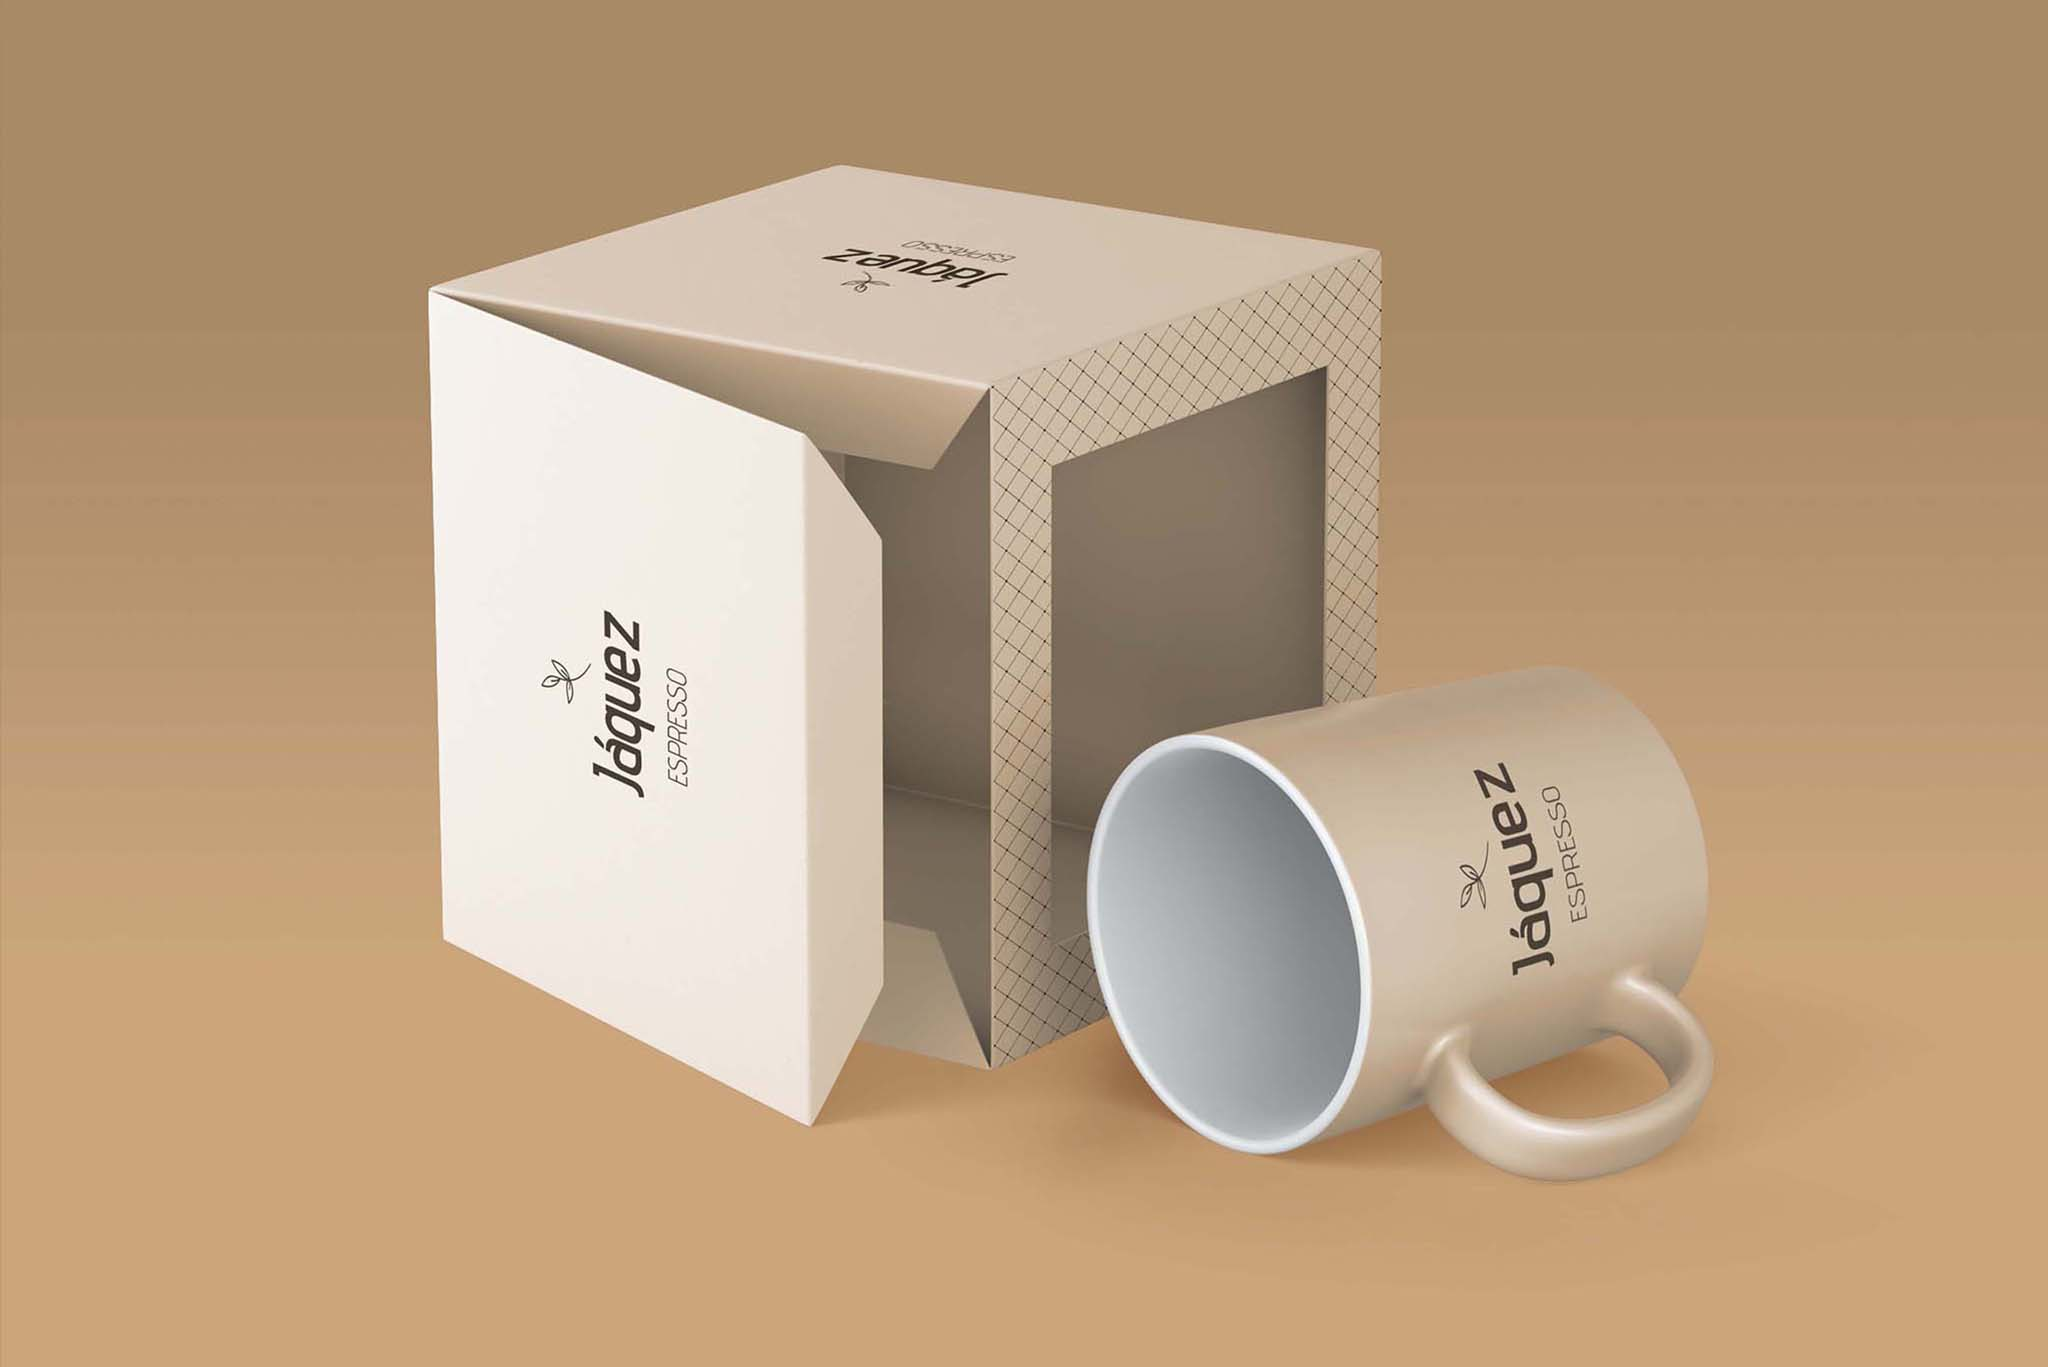 Jáquez Expresso Coffee Cup Packaging